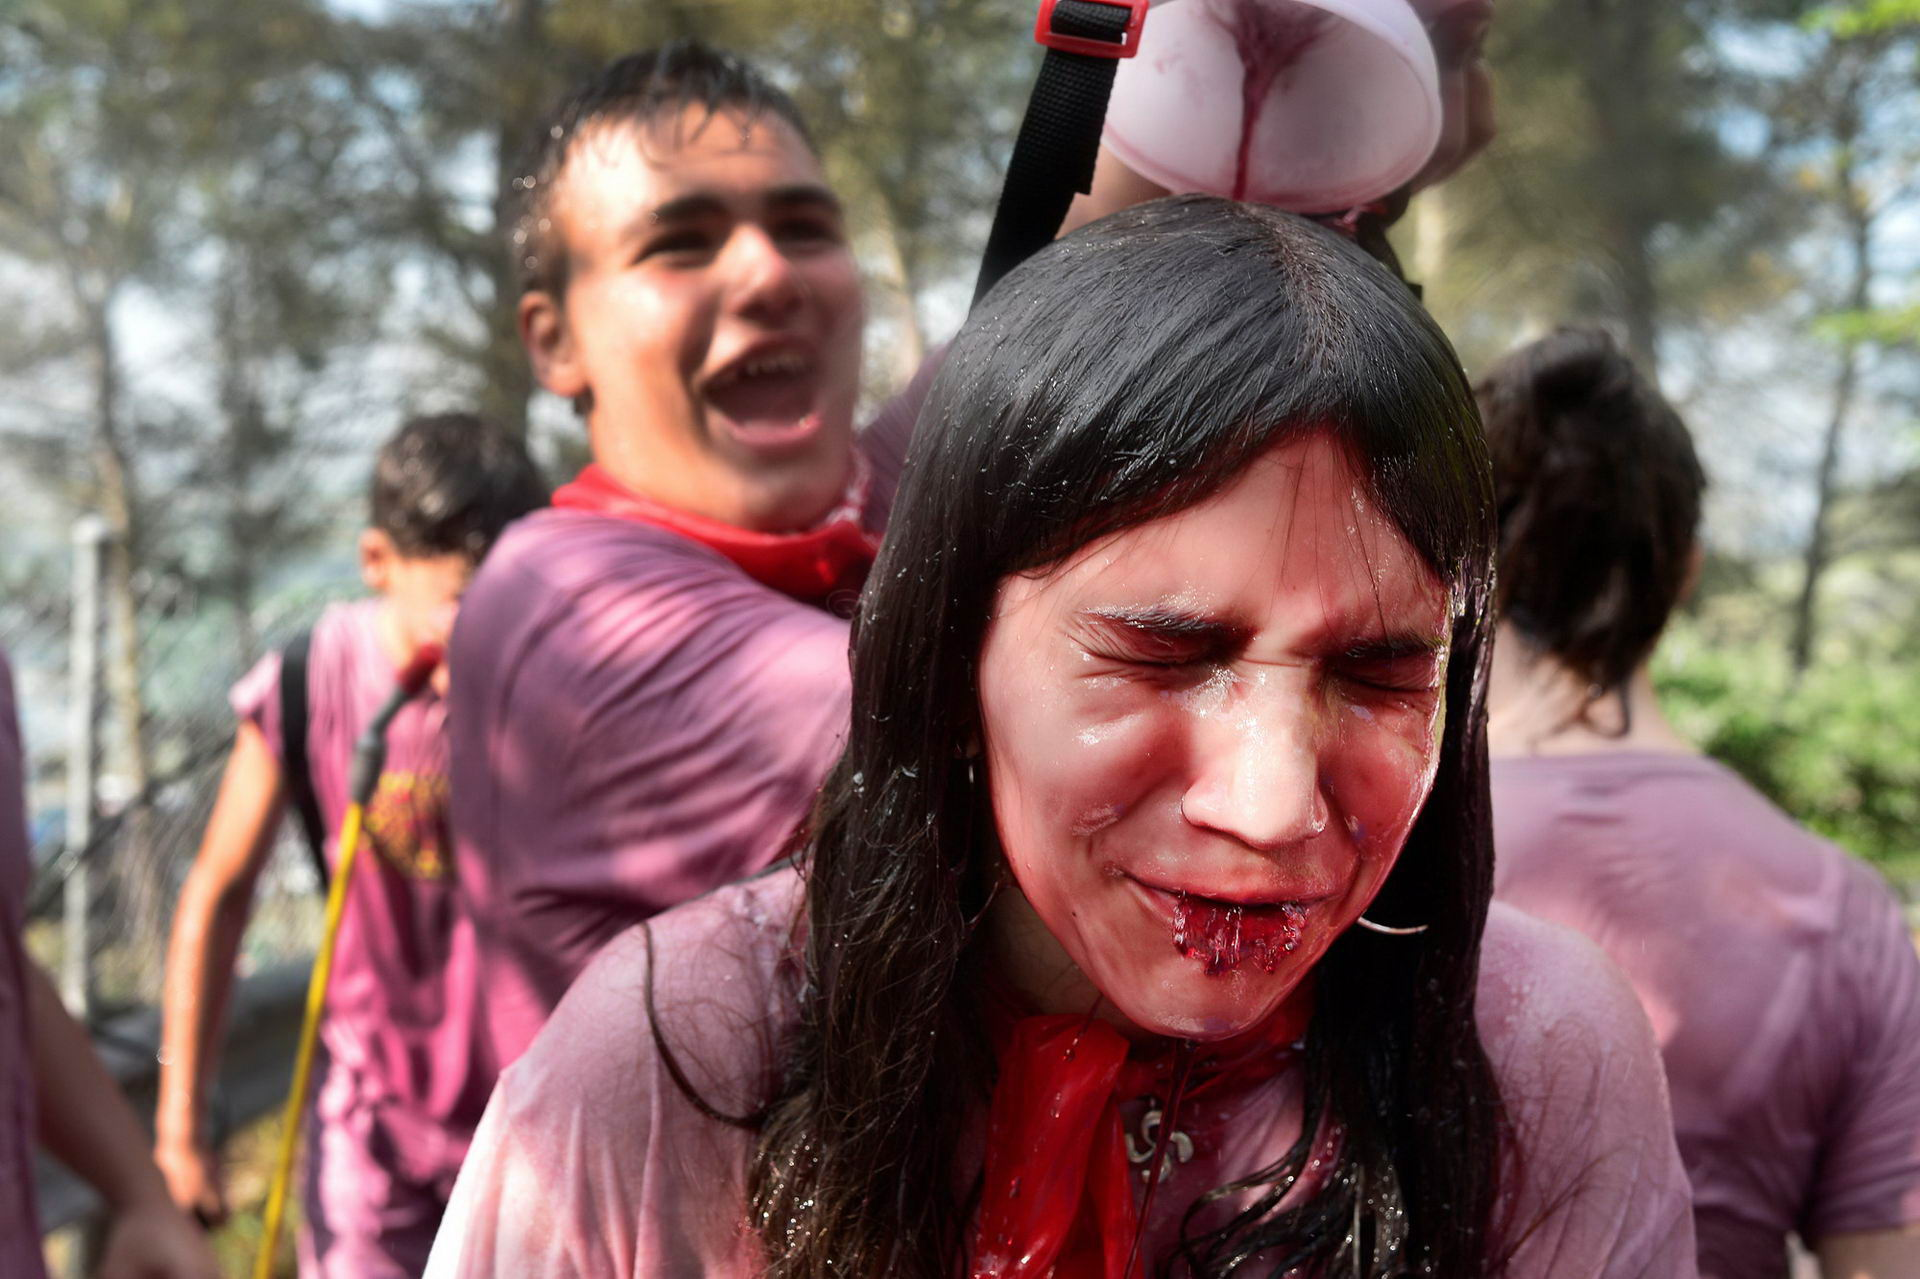 A reveller has wine poured over her during the Batalla de Vino (Wine Battle) in Haro